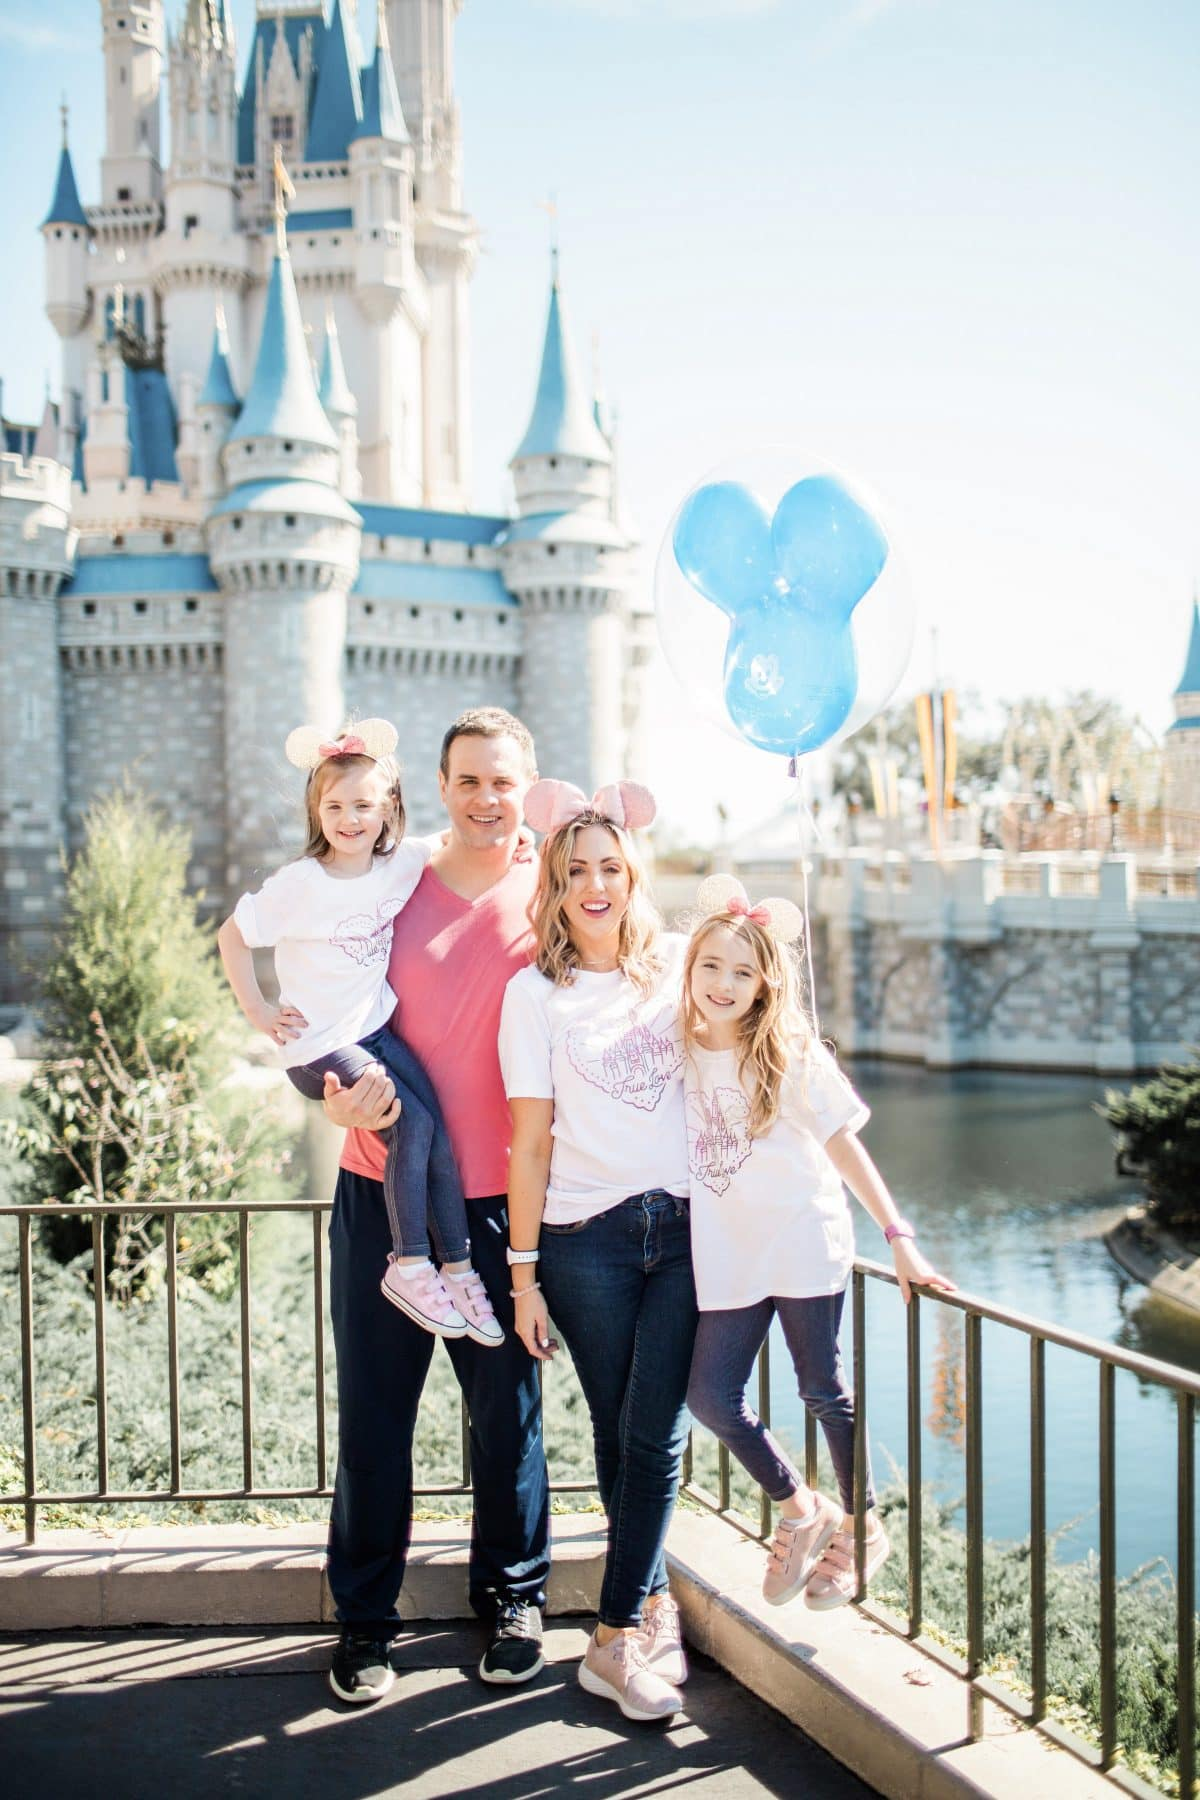 Houston lifestyle blogger Meg O. on the Go shares adorable Disney tees for the whole family. How cute are these True Love tees from It's a Magical Adventure!